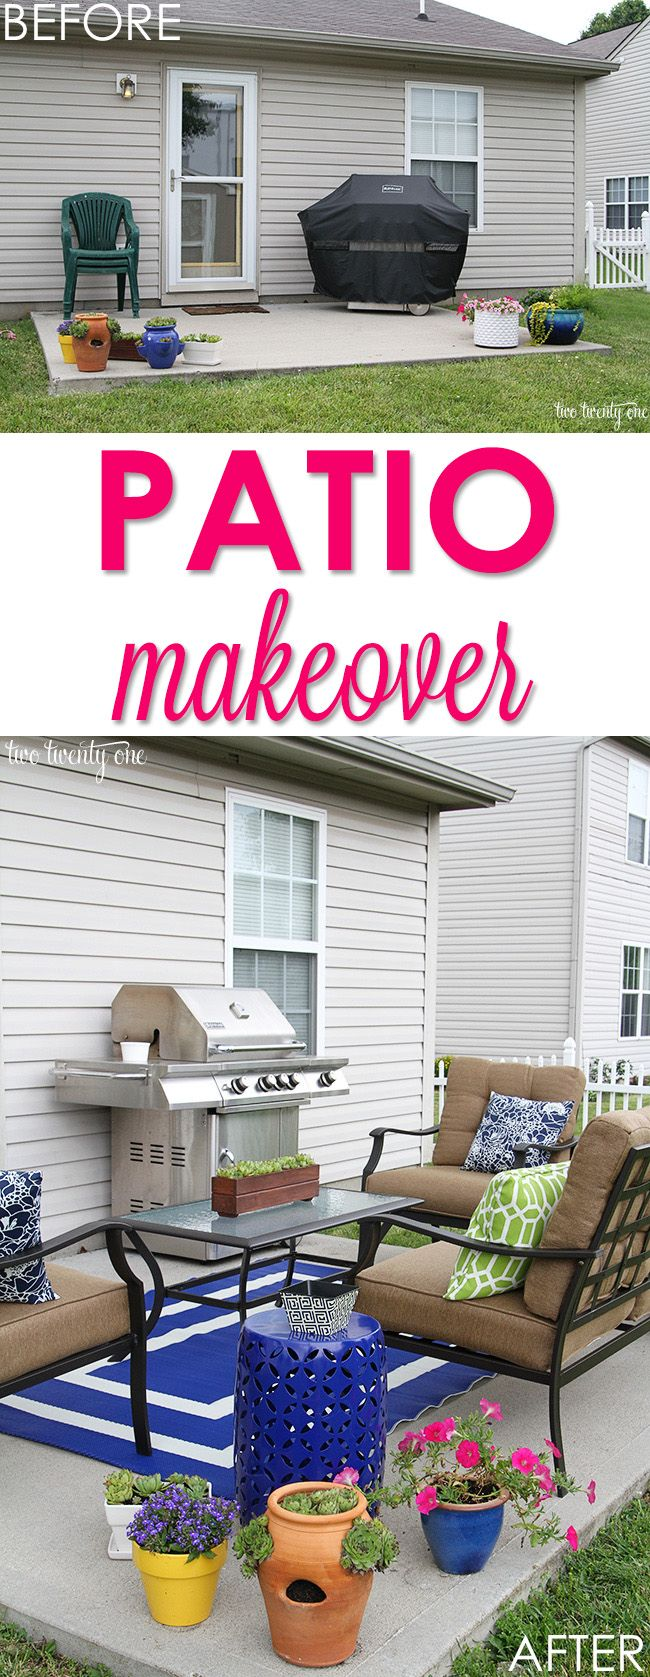 Backyard patio ideas for small spaces - Love This Small Patio Makeover